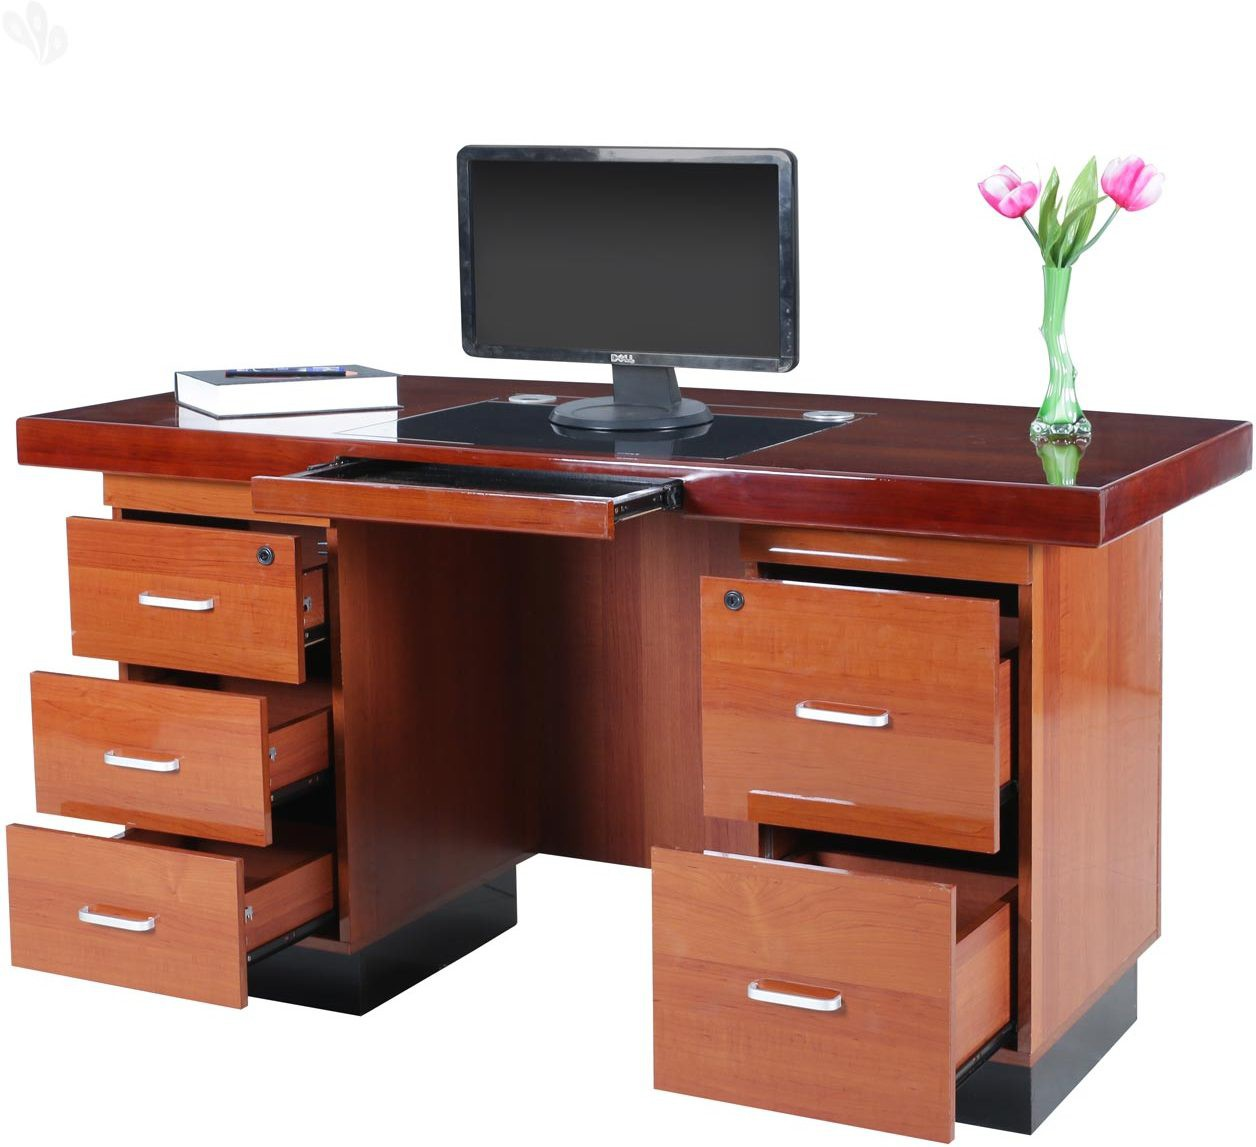 View Royal Oak Retro Engineered Wood Office Table(Free Standing, Finish Color - Honey Brown) Furniture (Royal Oak)